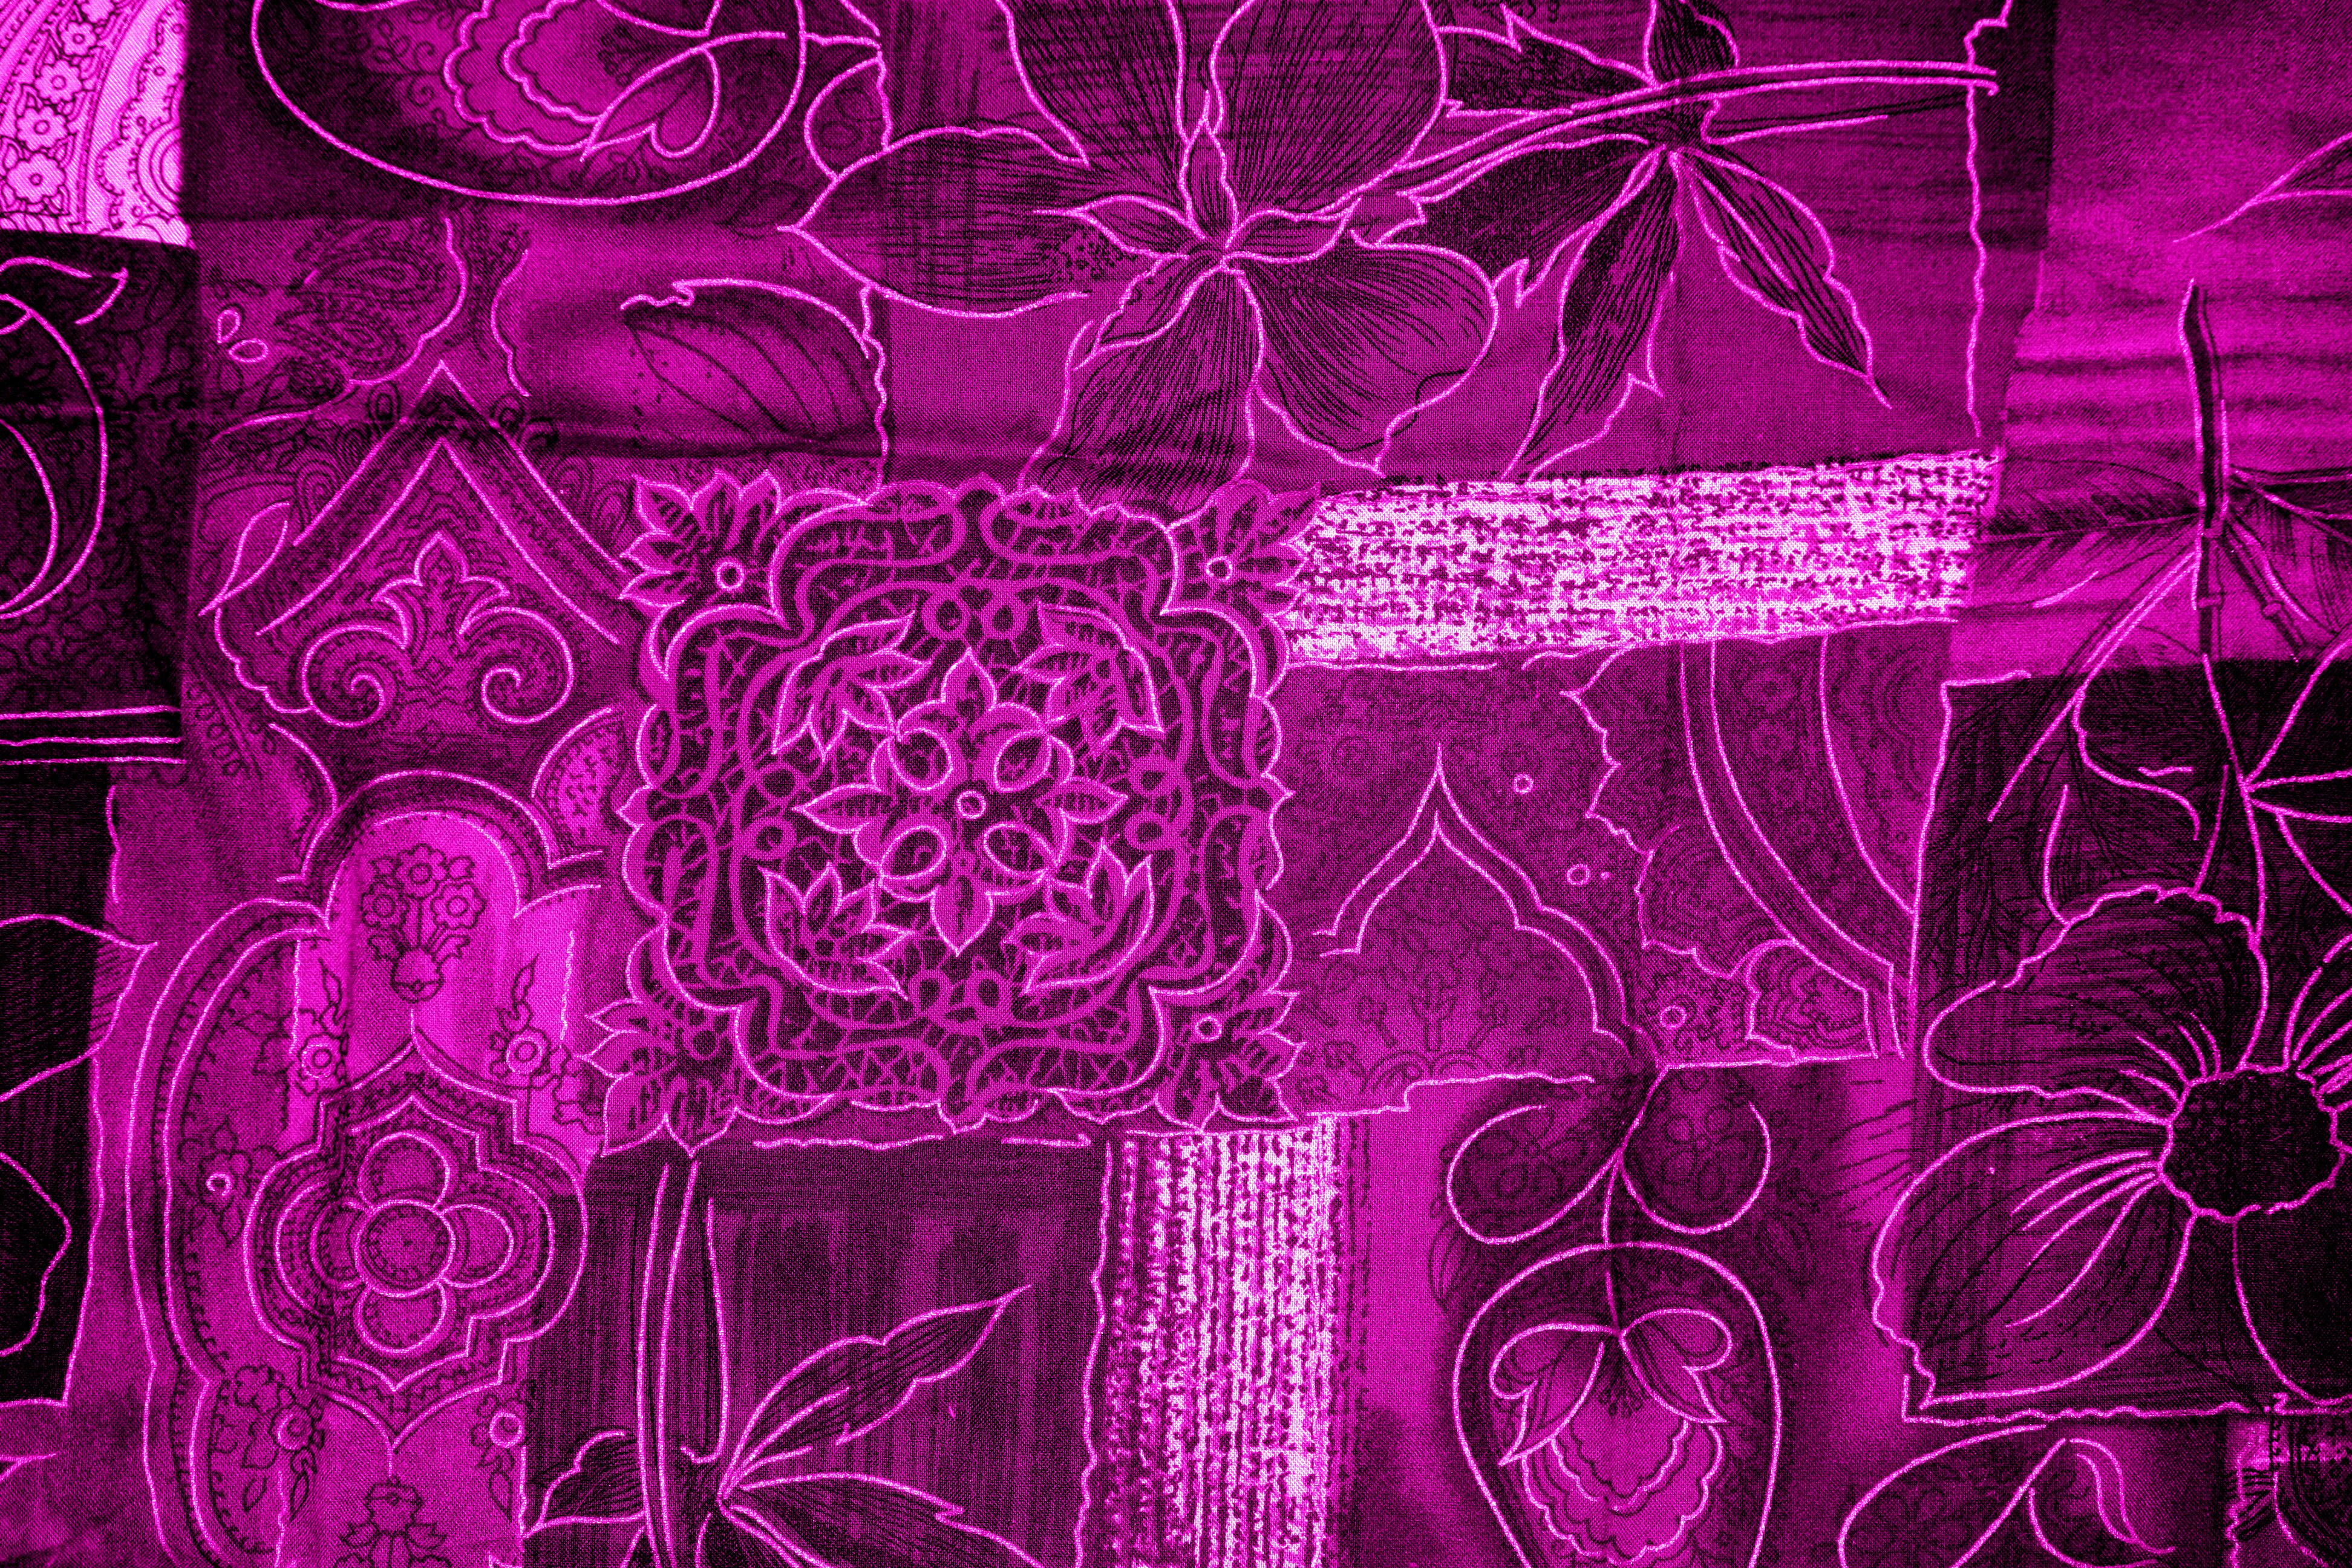 Pink fabric texture free high resolution photo dimensions 3888 - Hot Pink Patchwork Fabric Texture